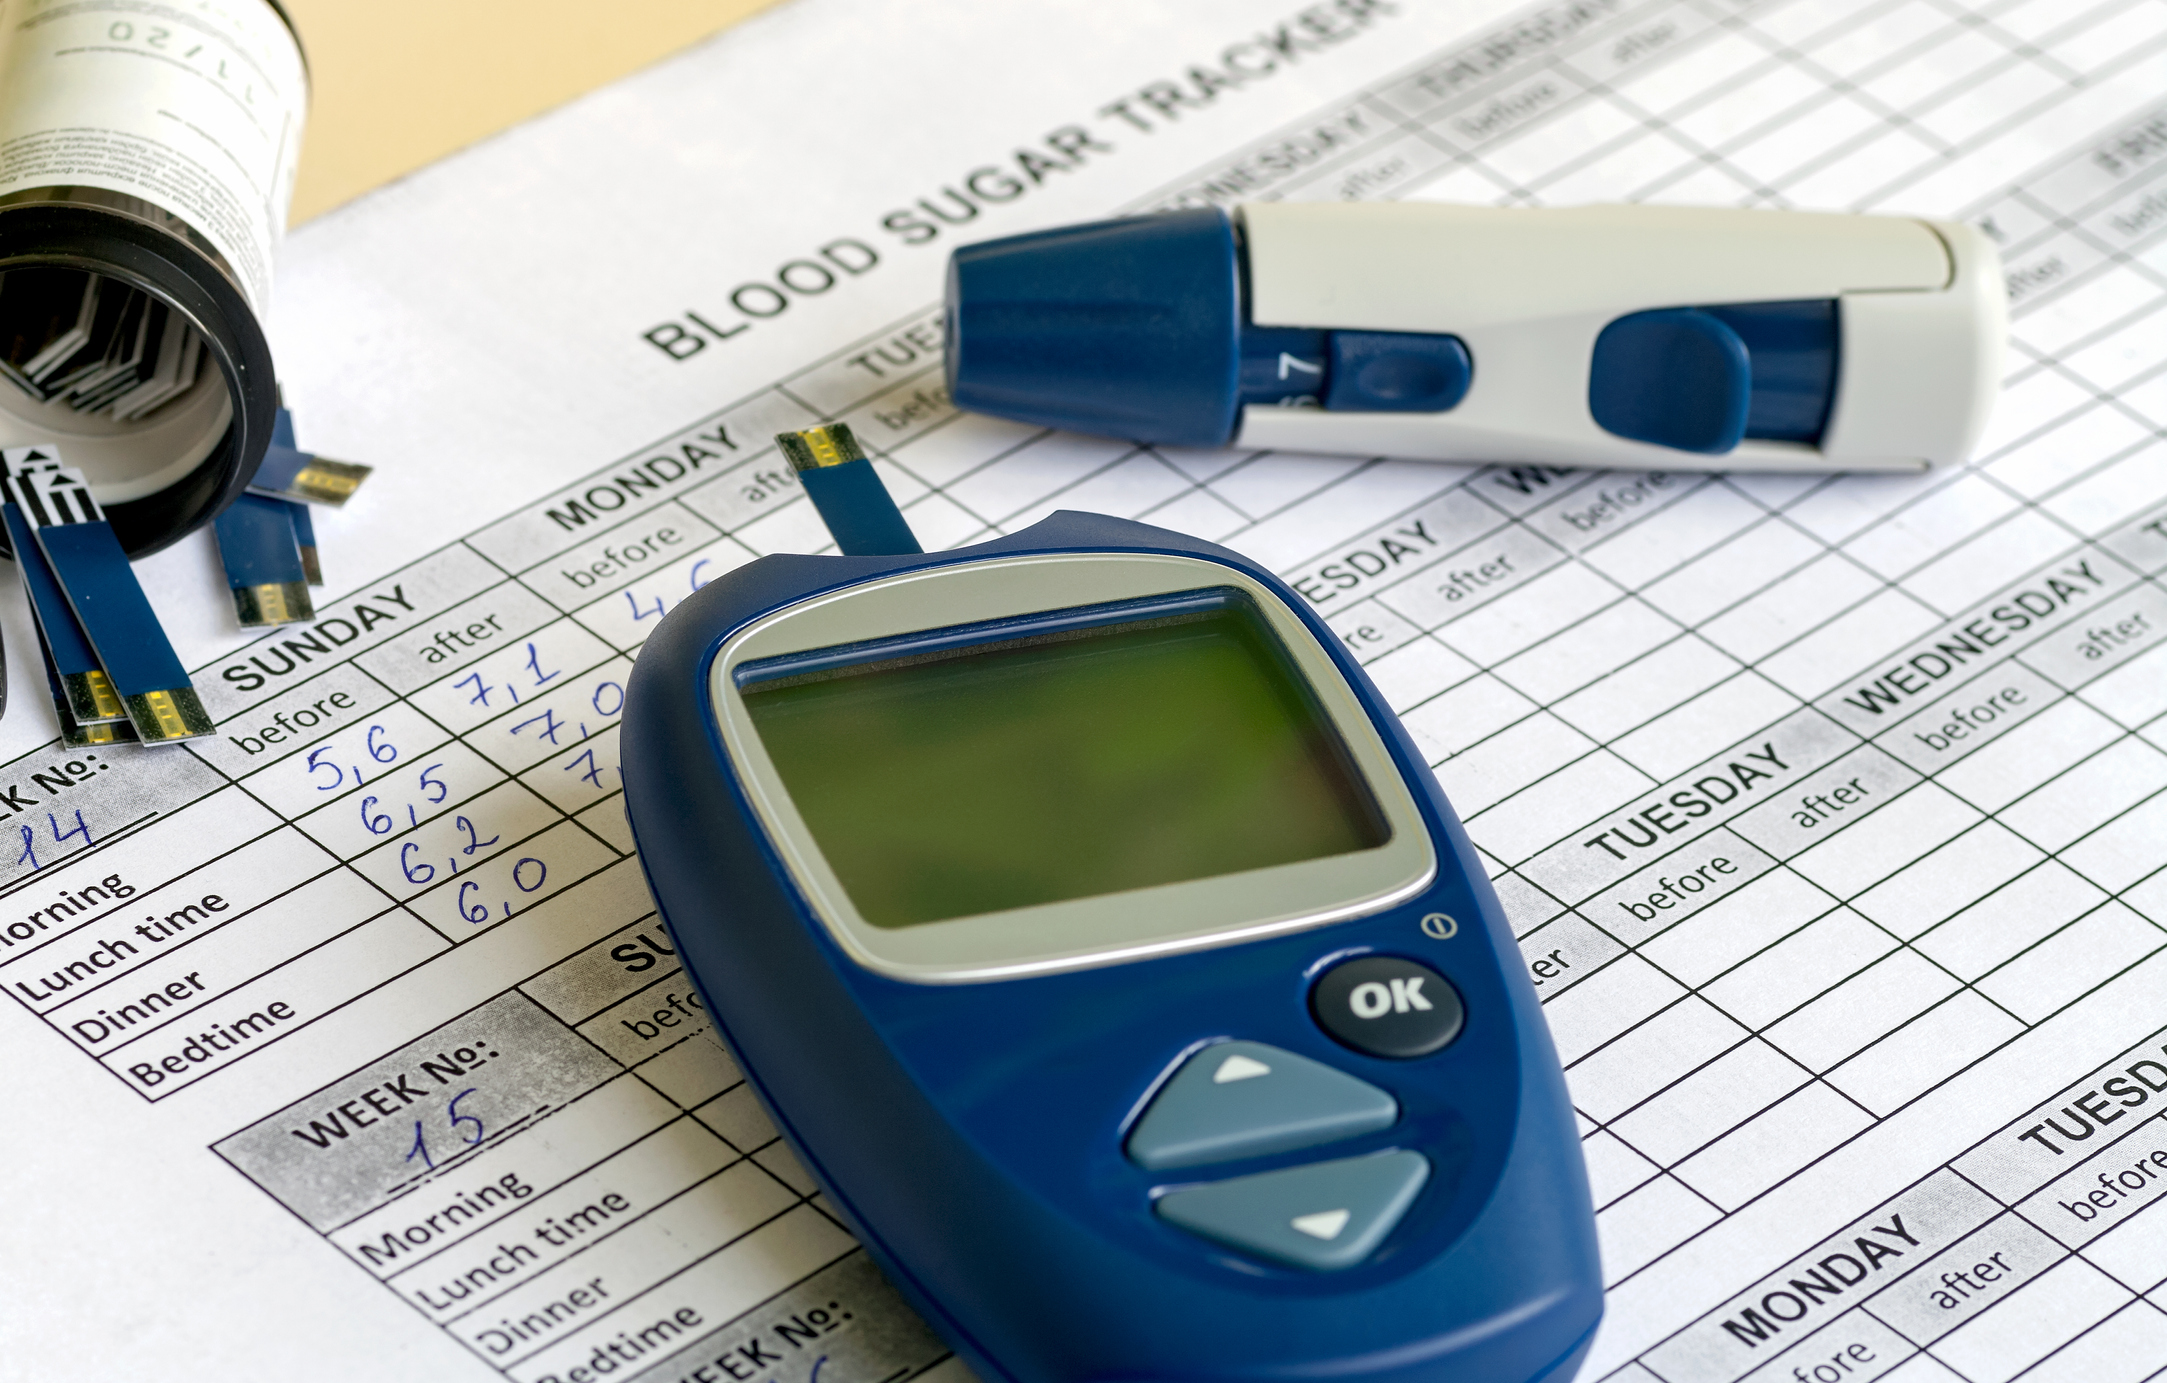 Let us help you manage your diabetes.